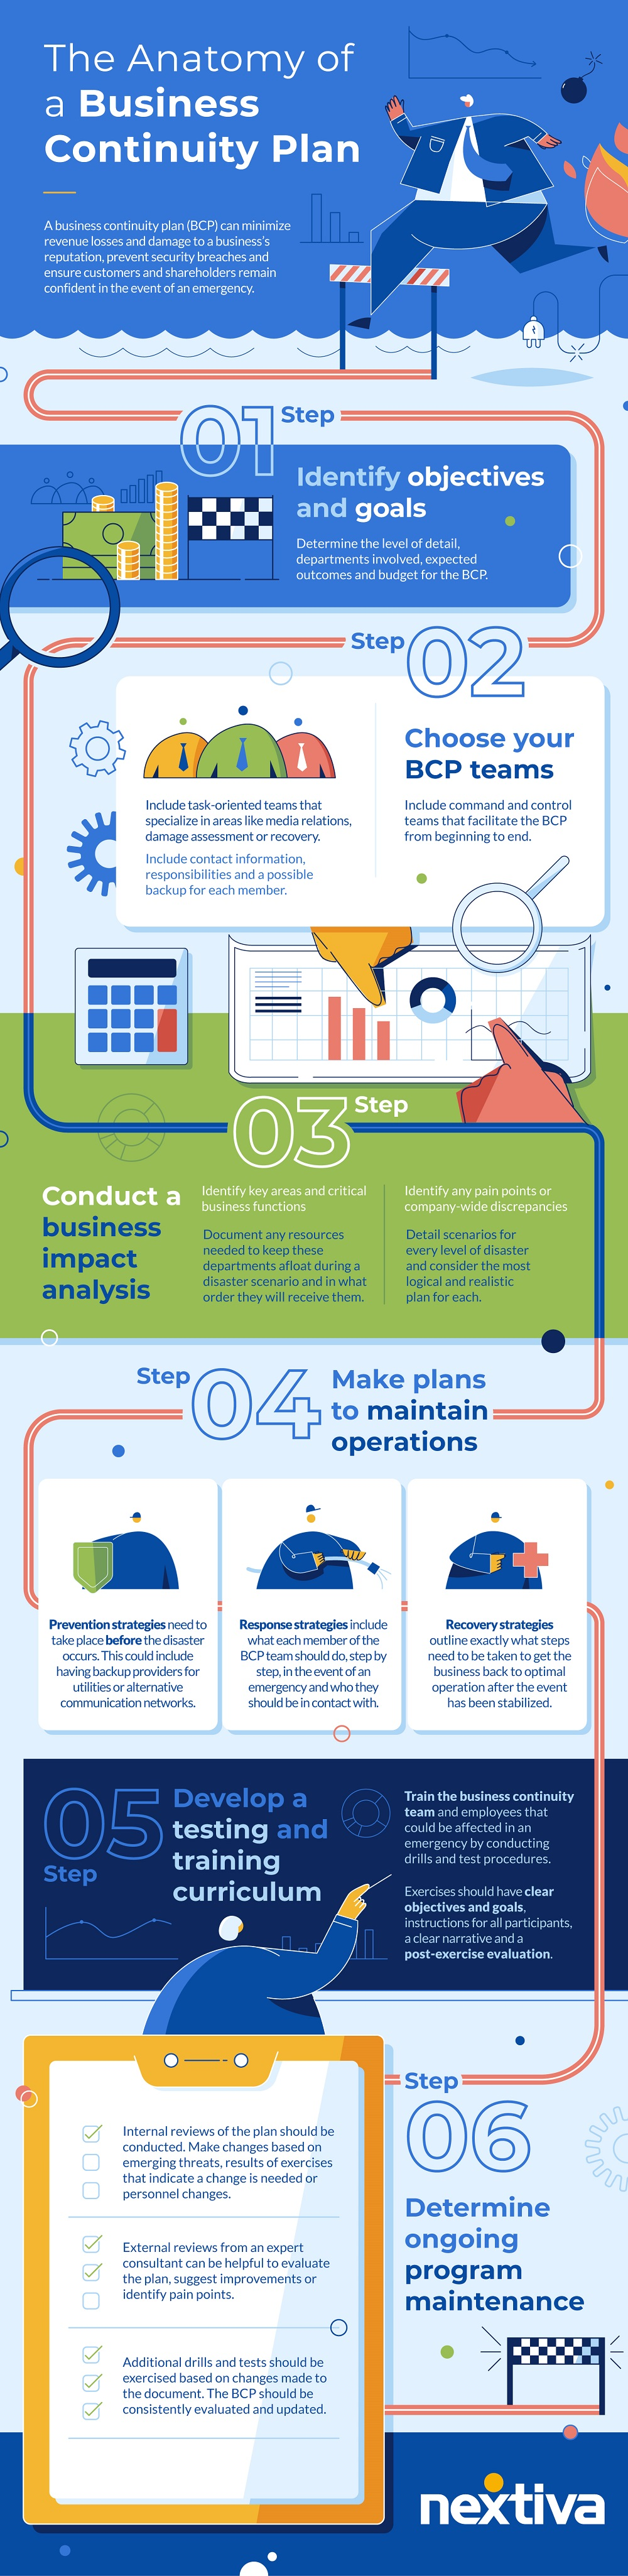 nextiva-business-continuity-infographic